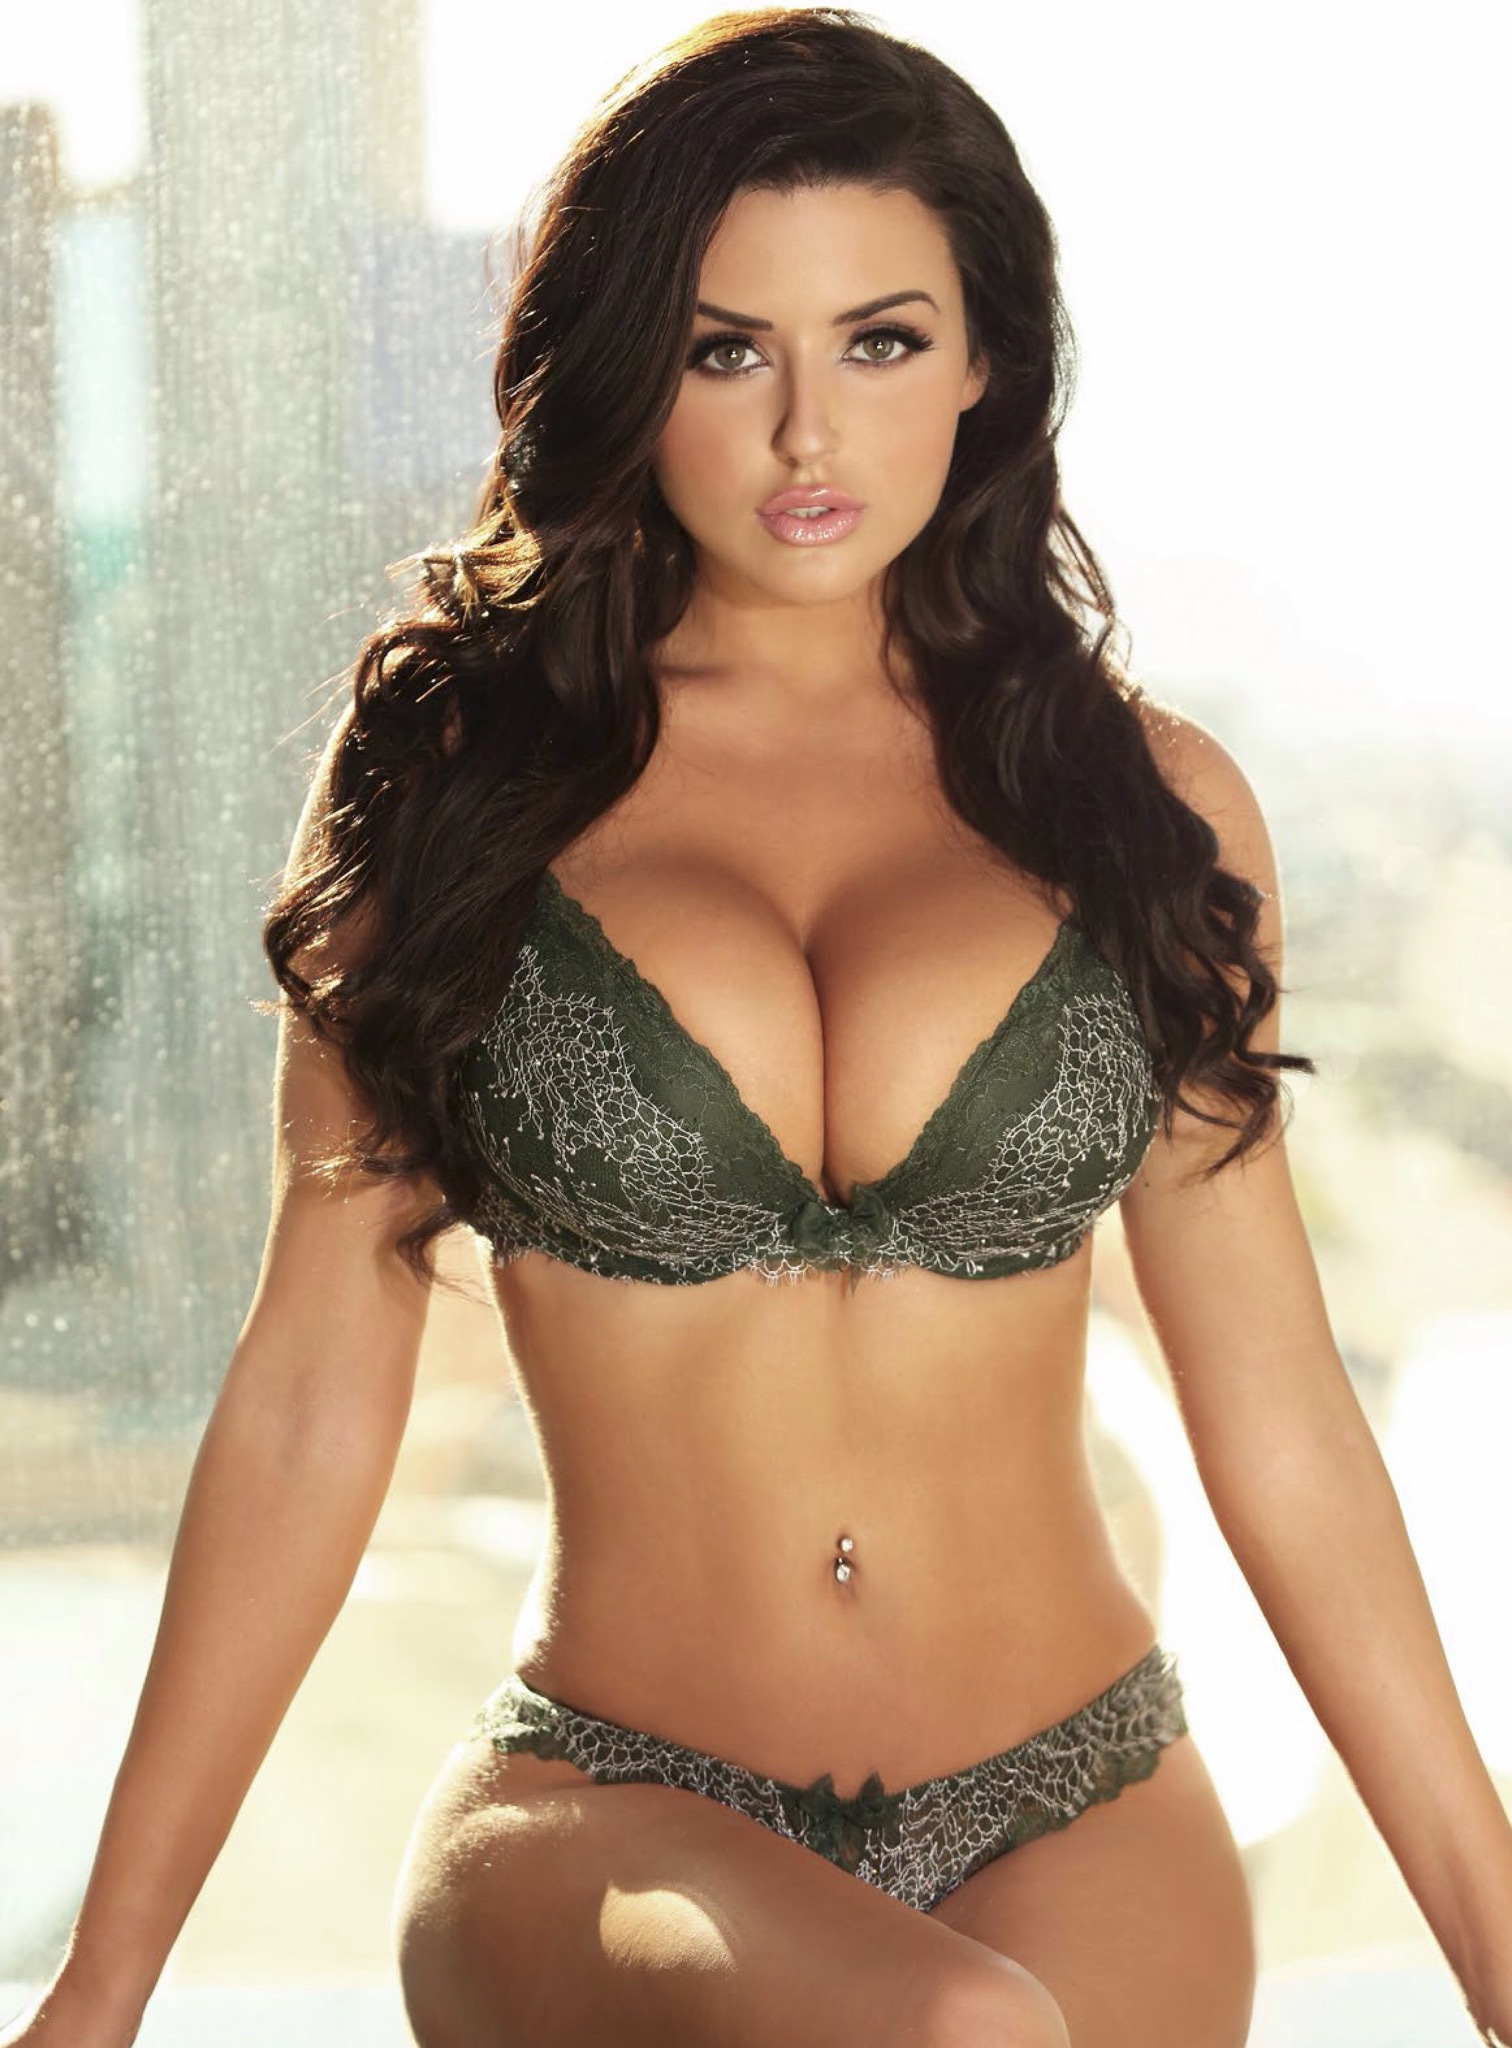 Abigail Ratchford For Smartphone